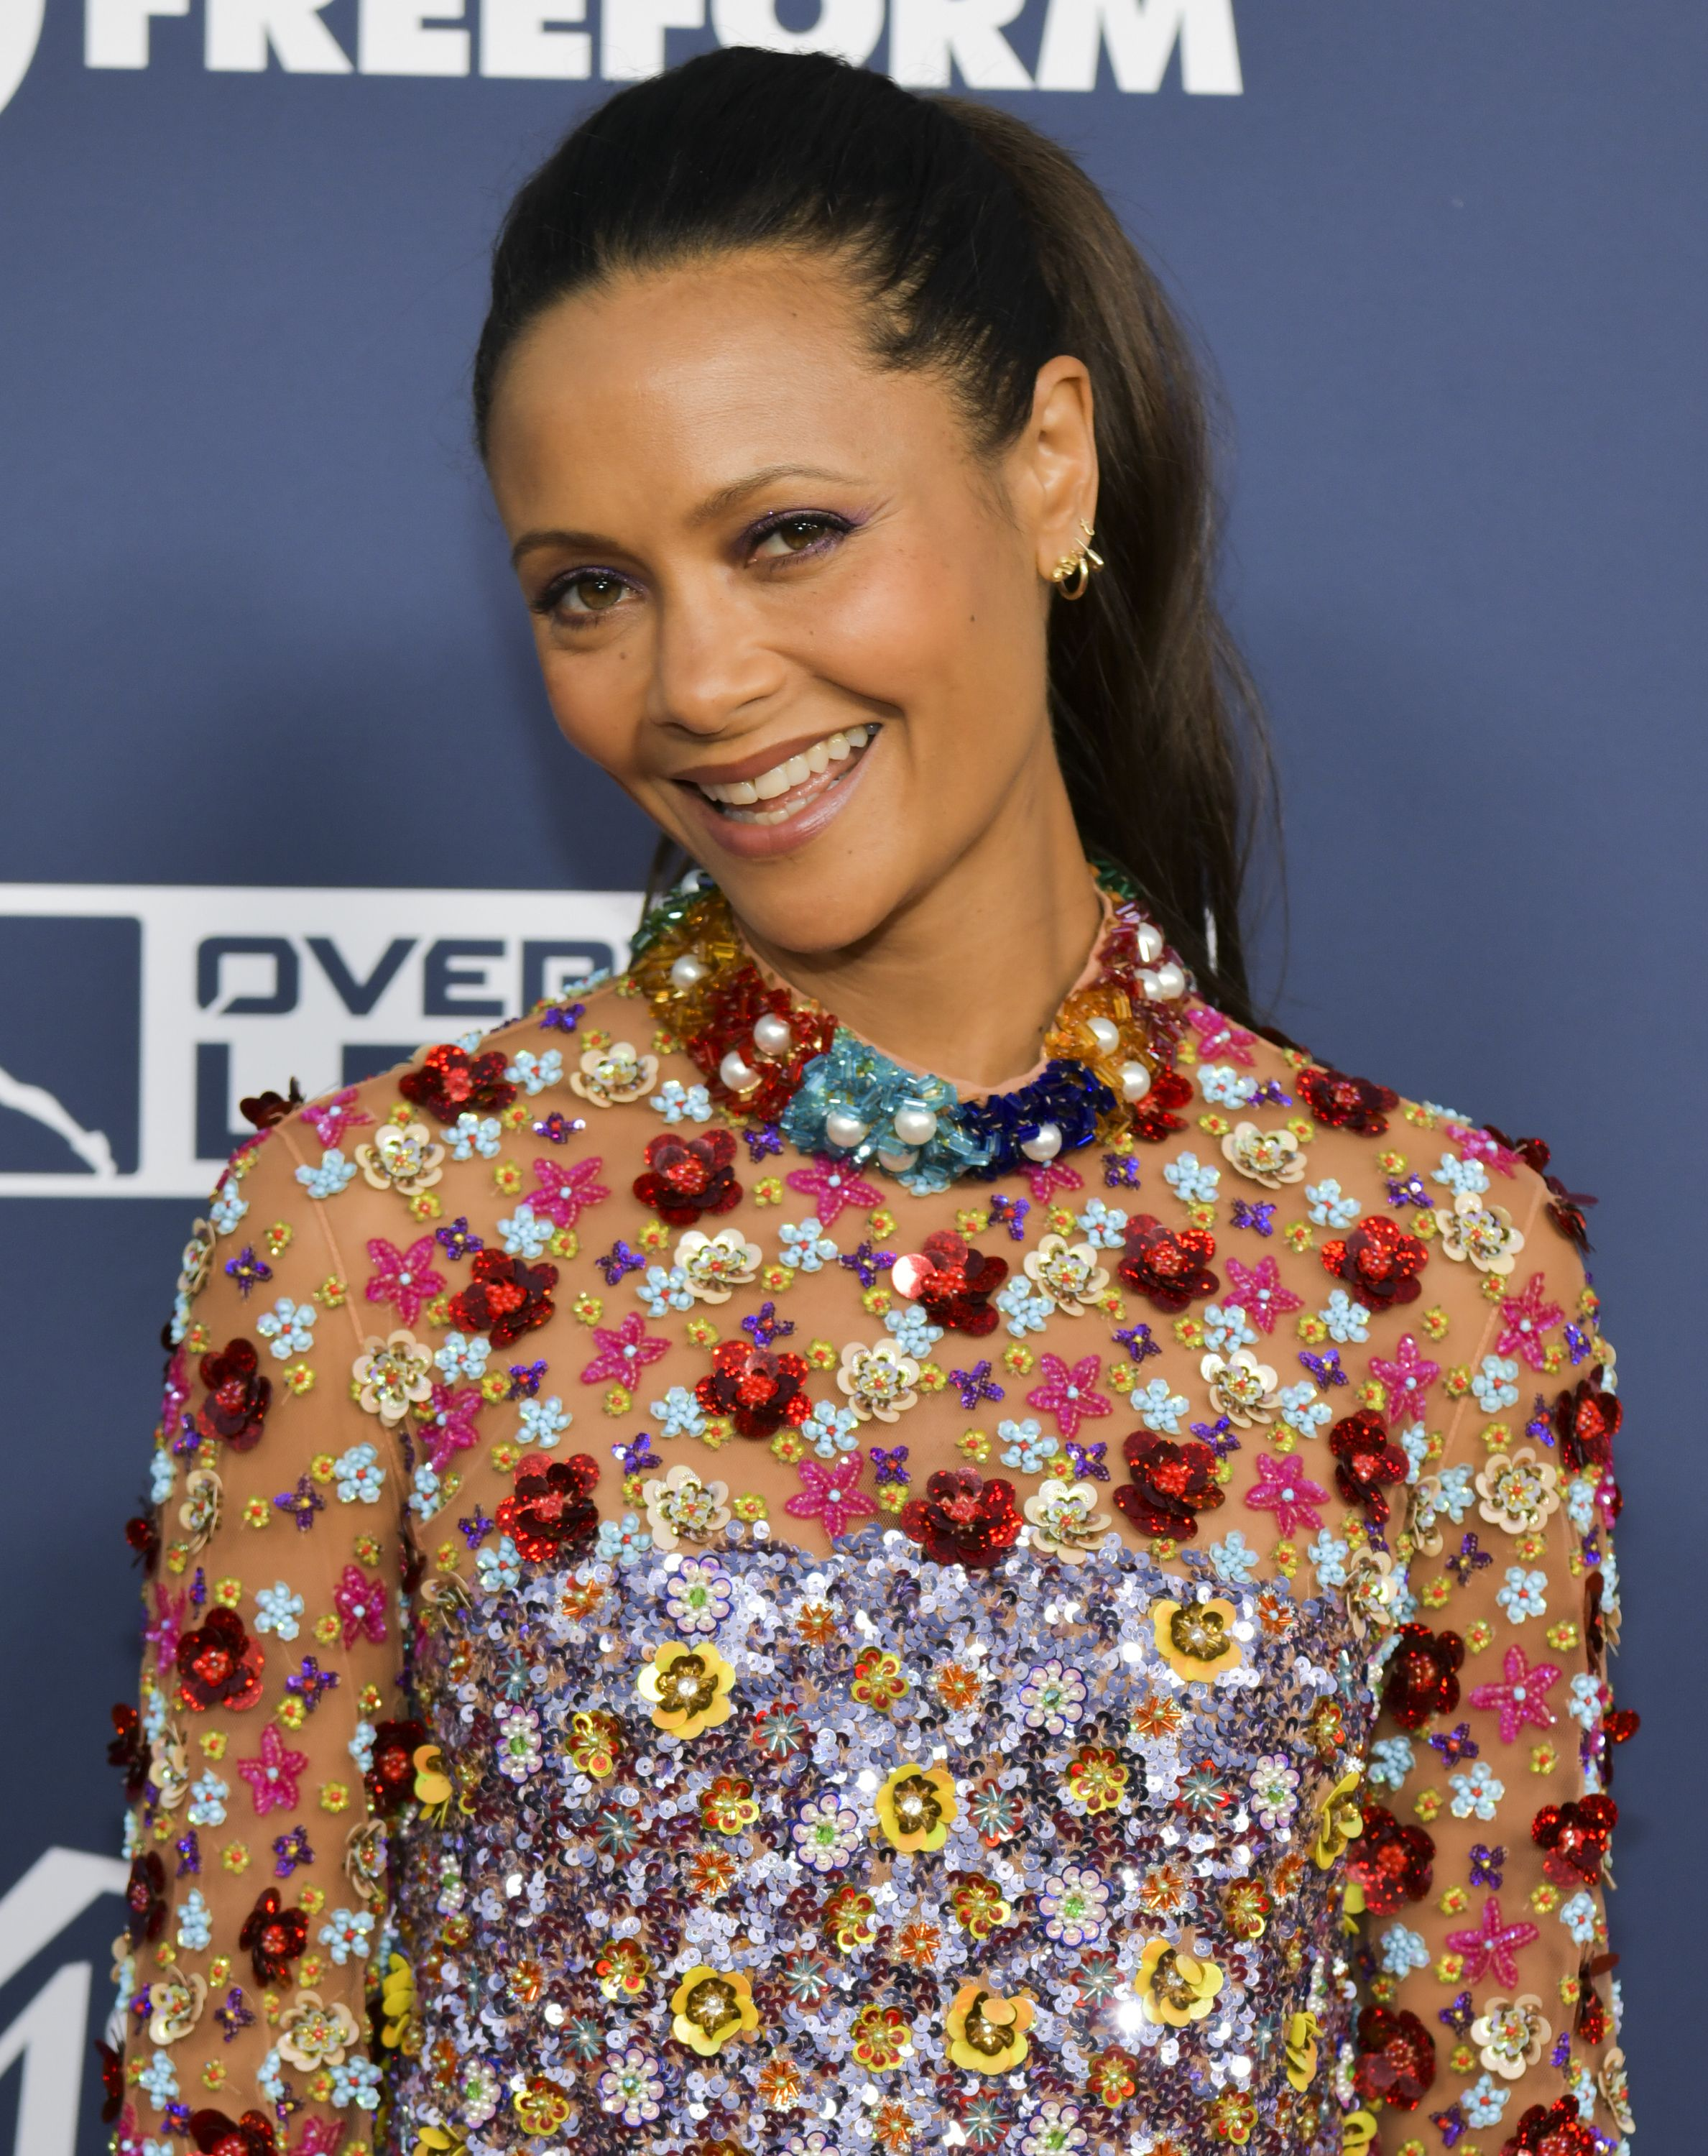 8 skincare secrets Thandie Newton swears by